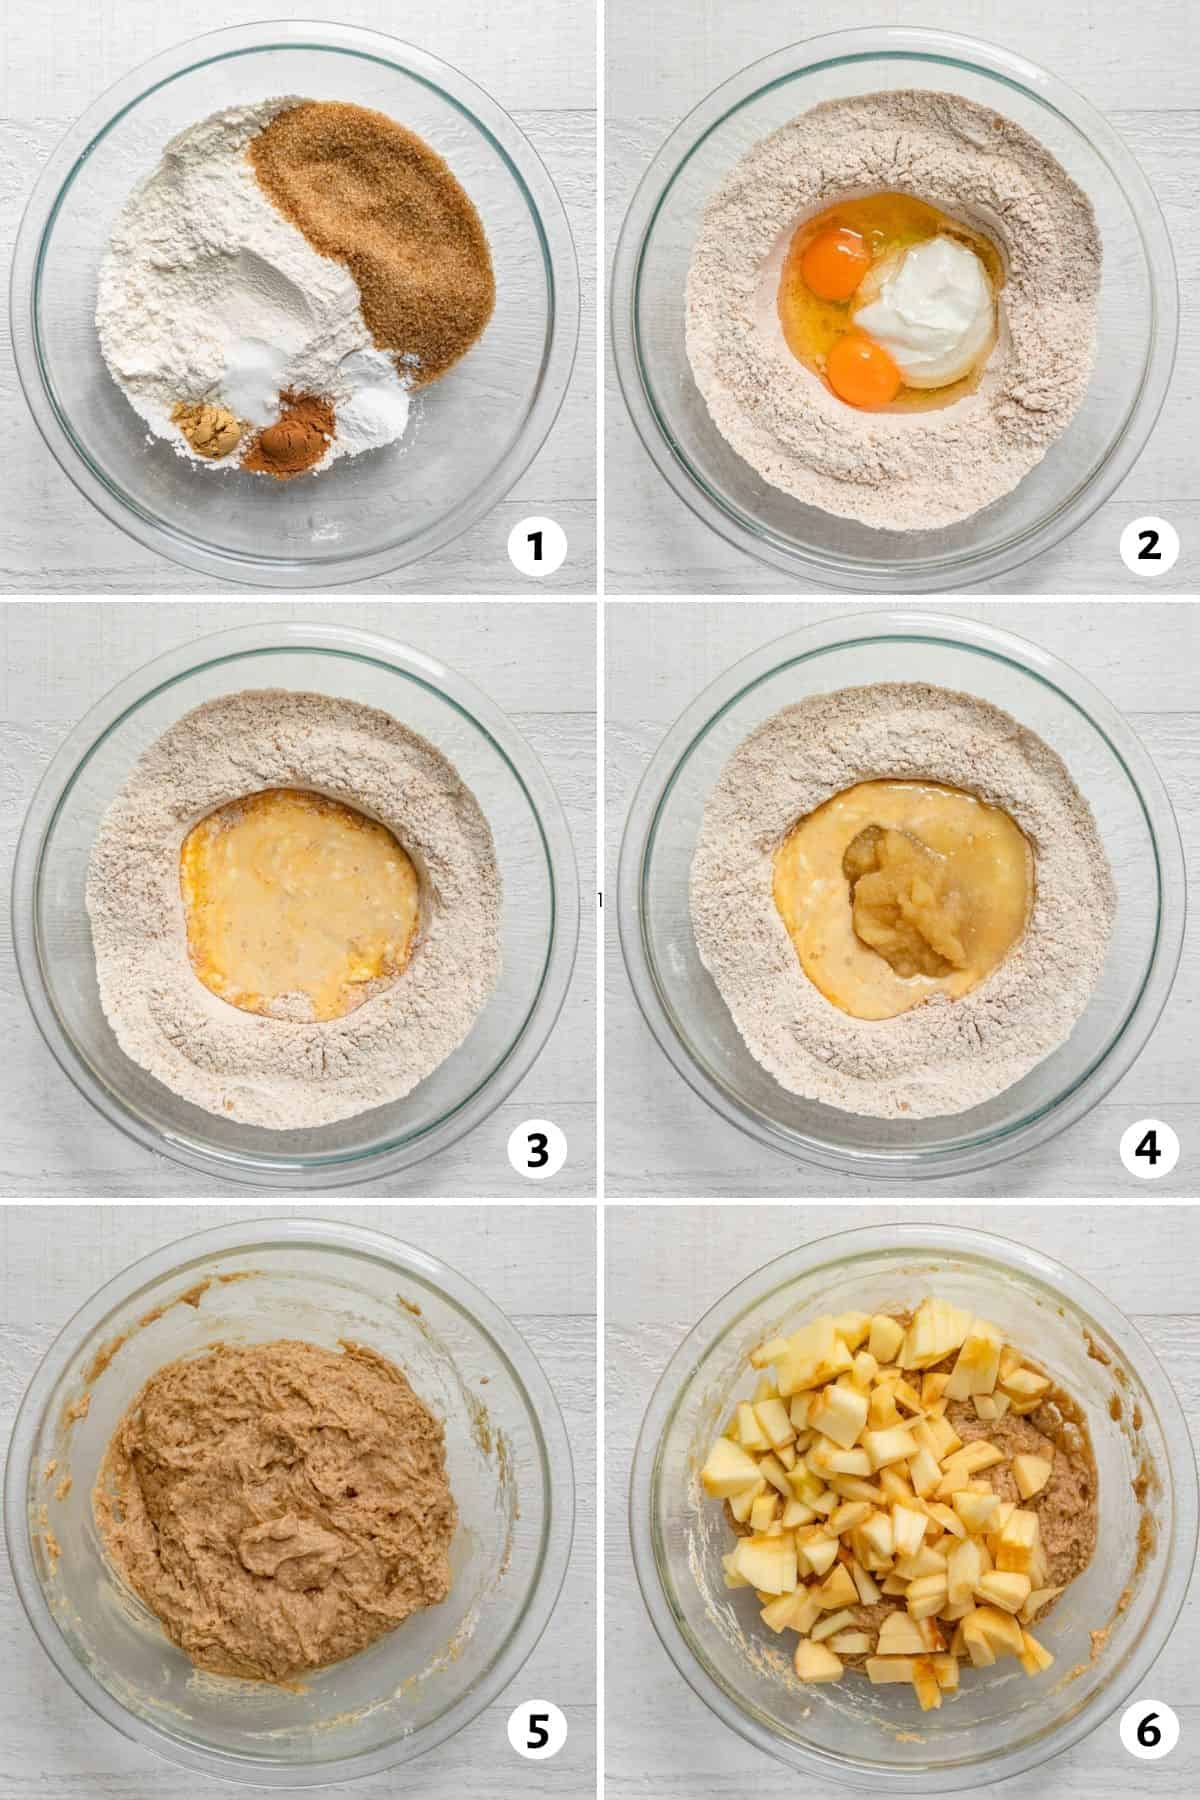 6 image collage showing one bowl and the ingredients getting combined to make the muffin recipe